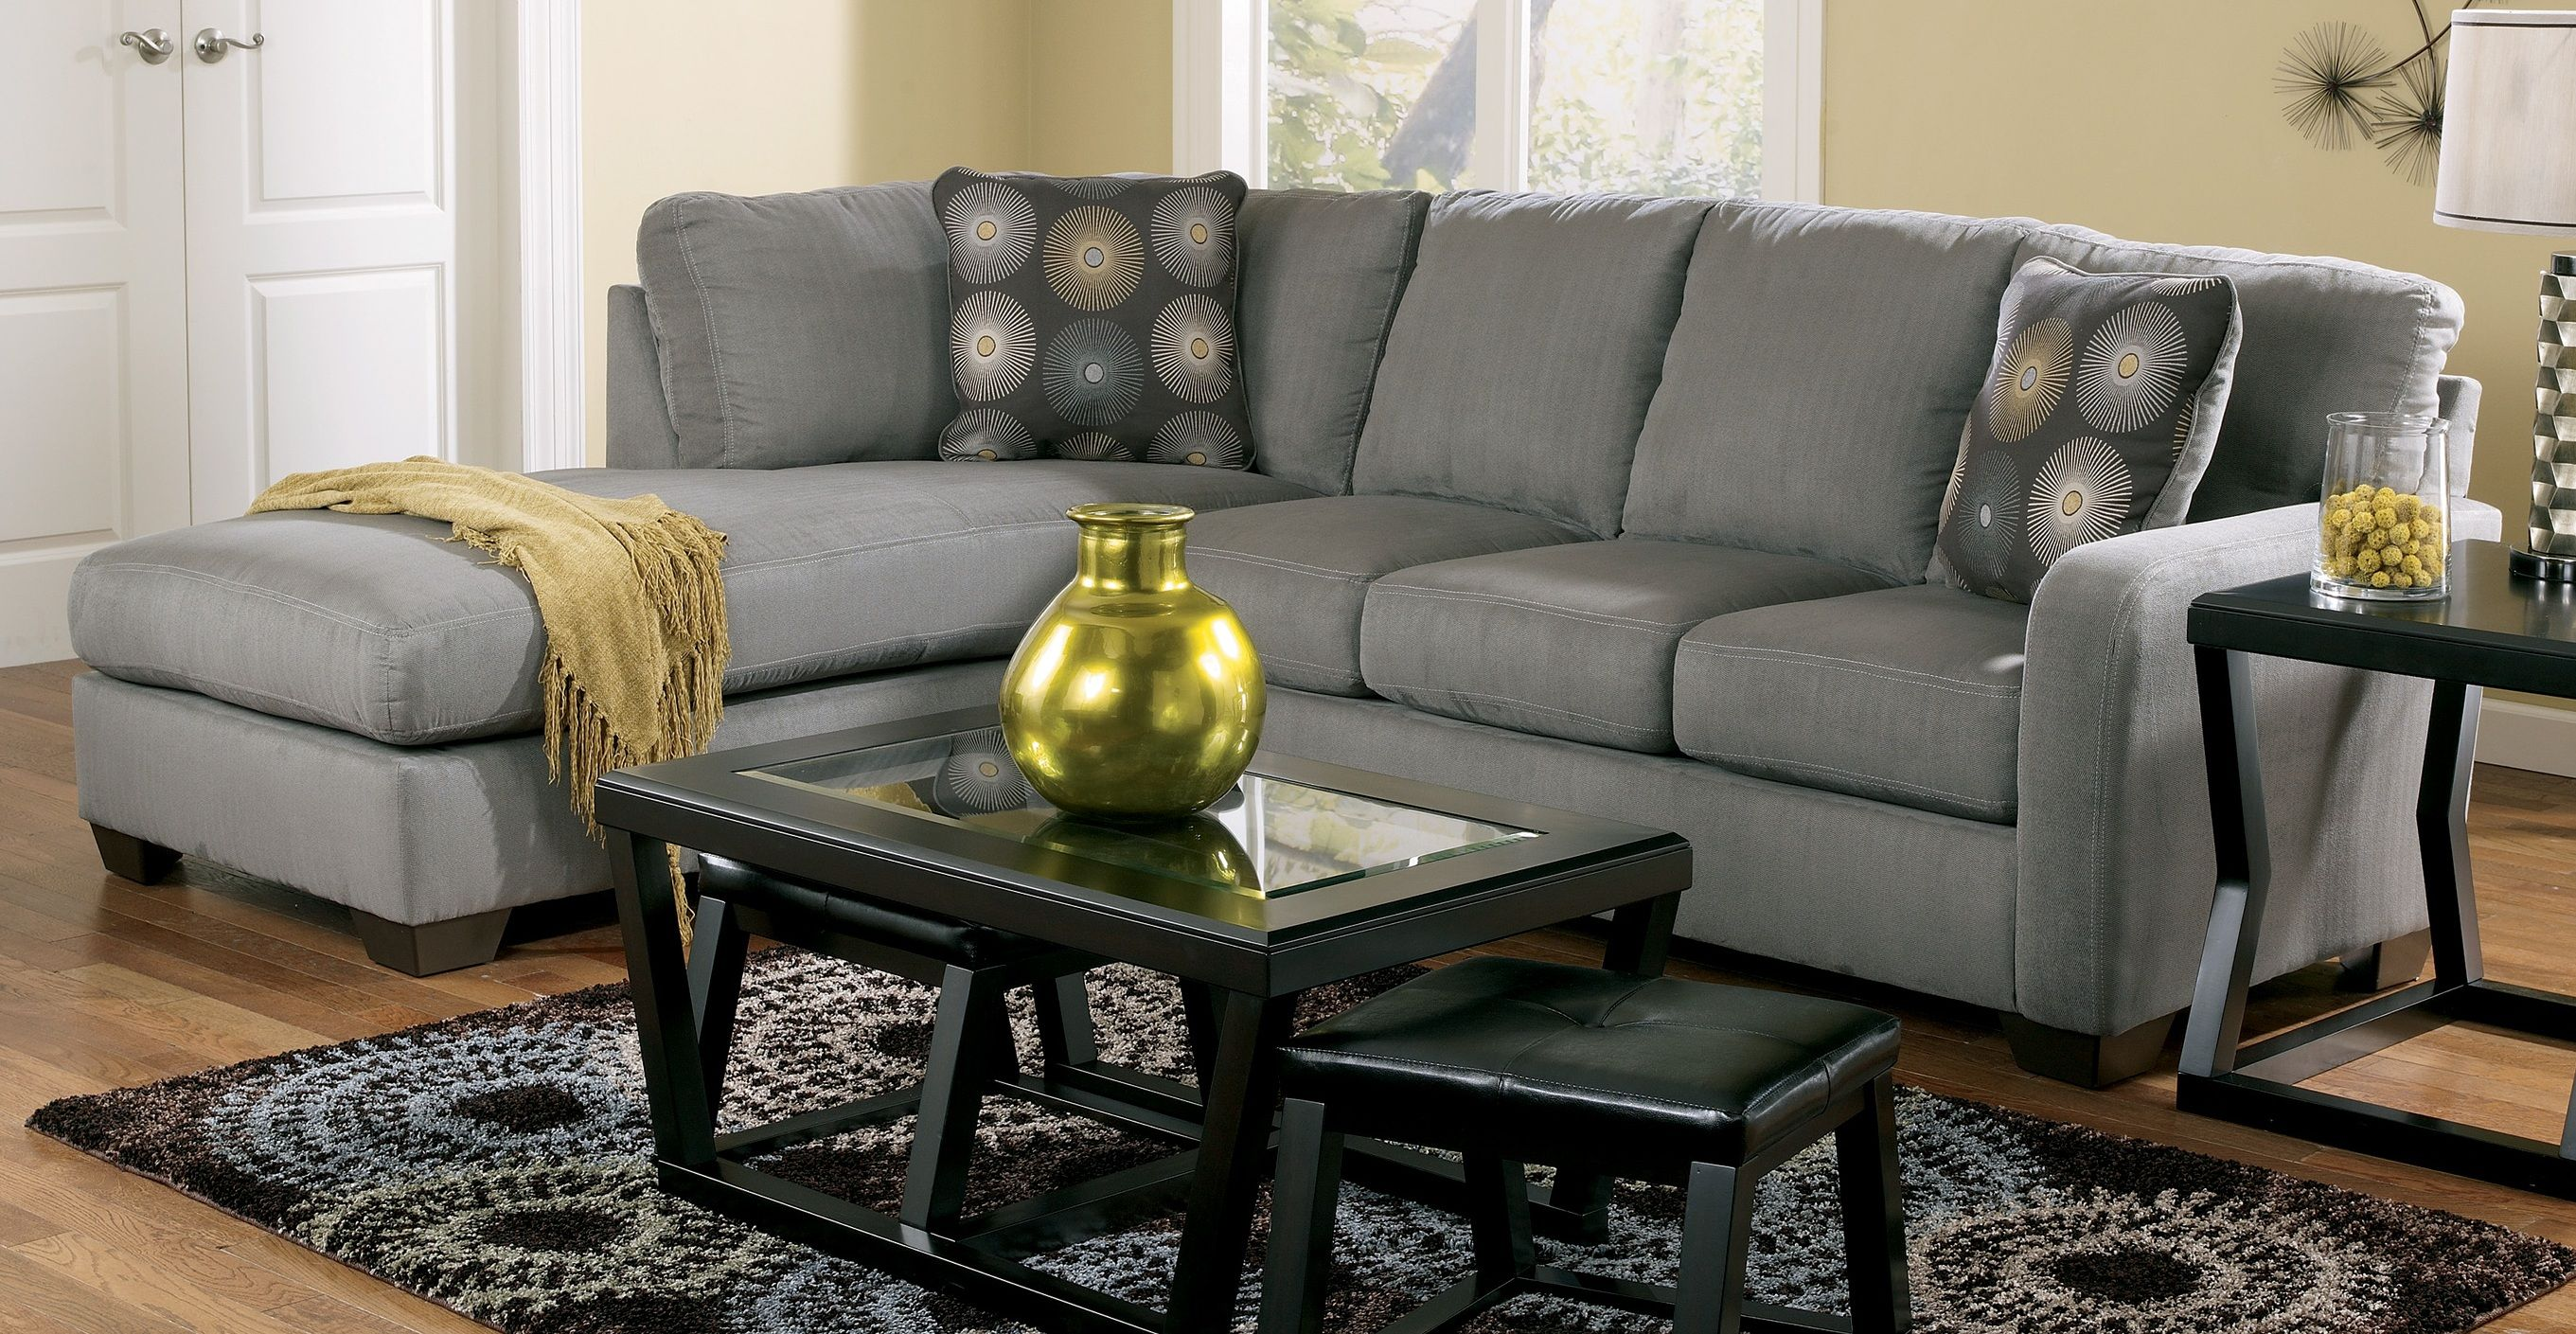 ZellaCharcoal Sectional Special Sale Price Immediate Delivey - Marjen furniture